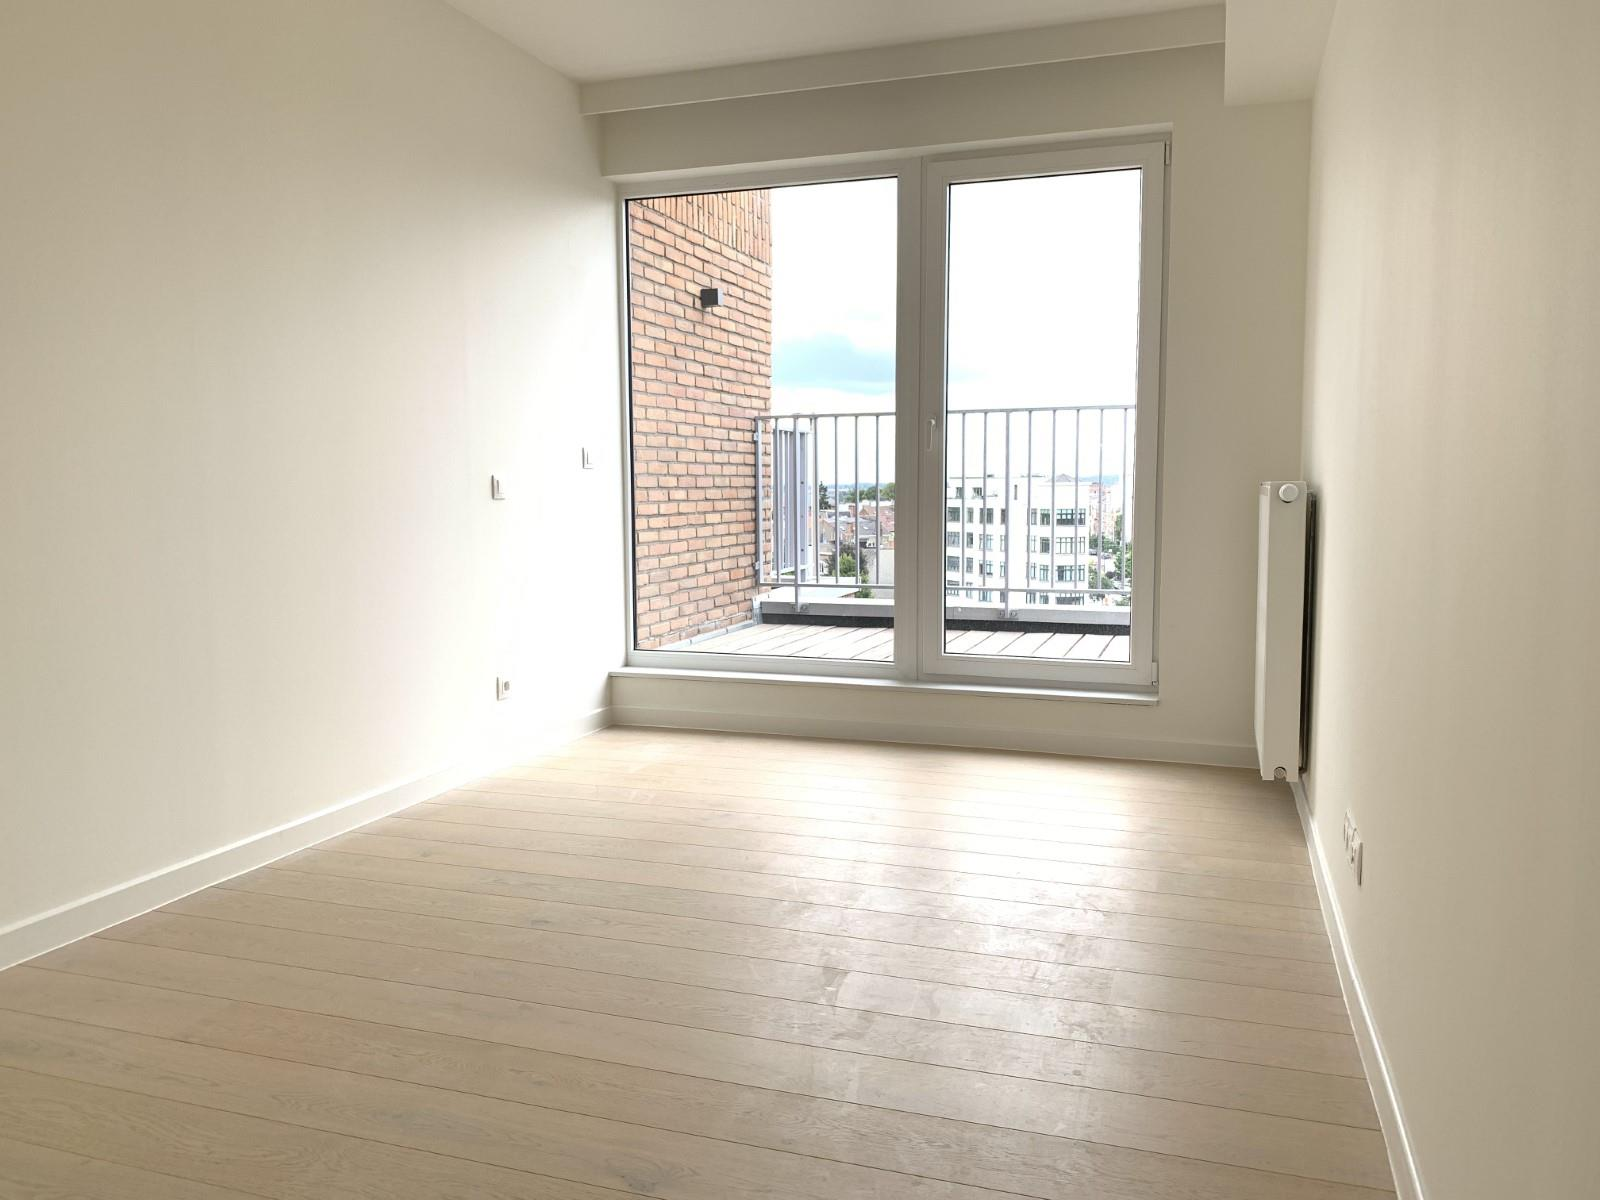 Appartement exceptionnel - Schaerbeek - #3964914-5